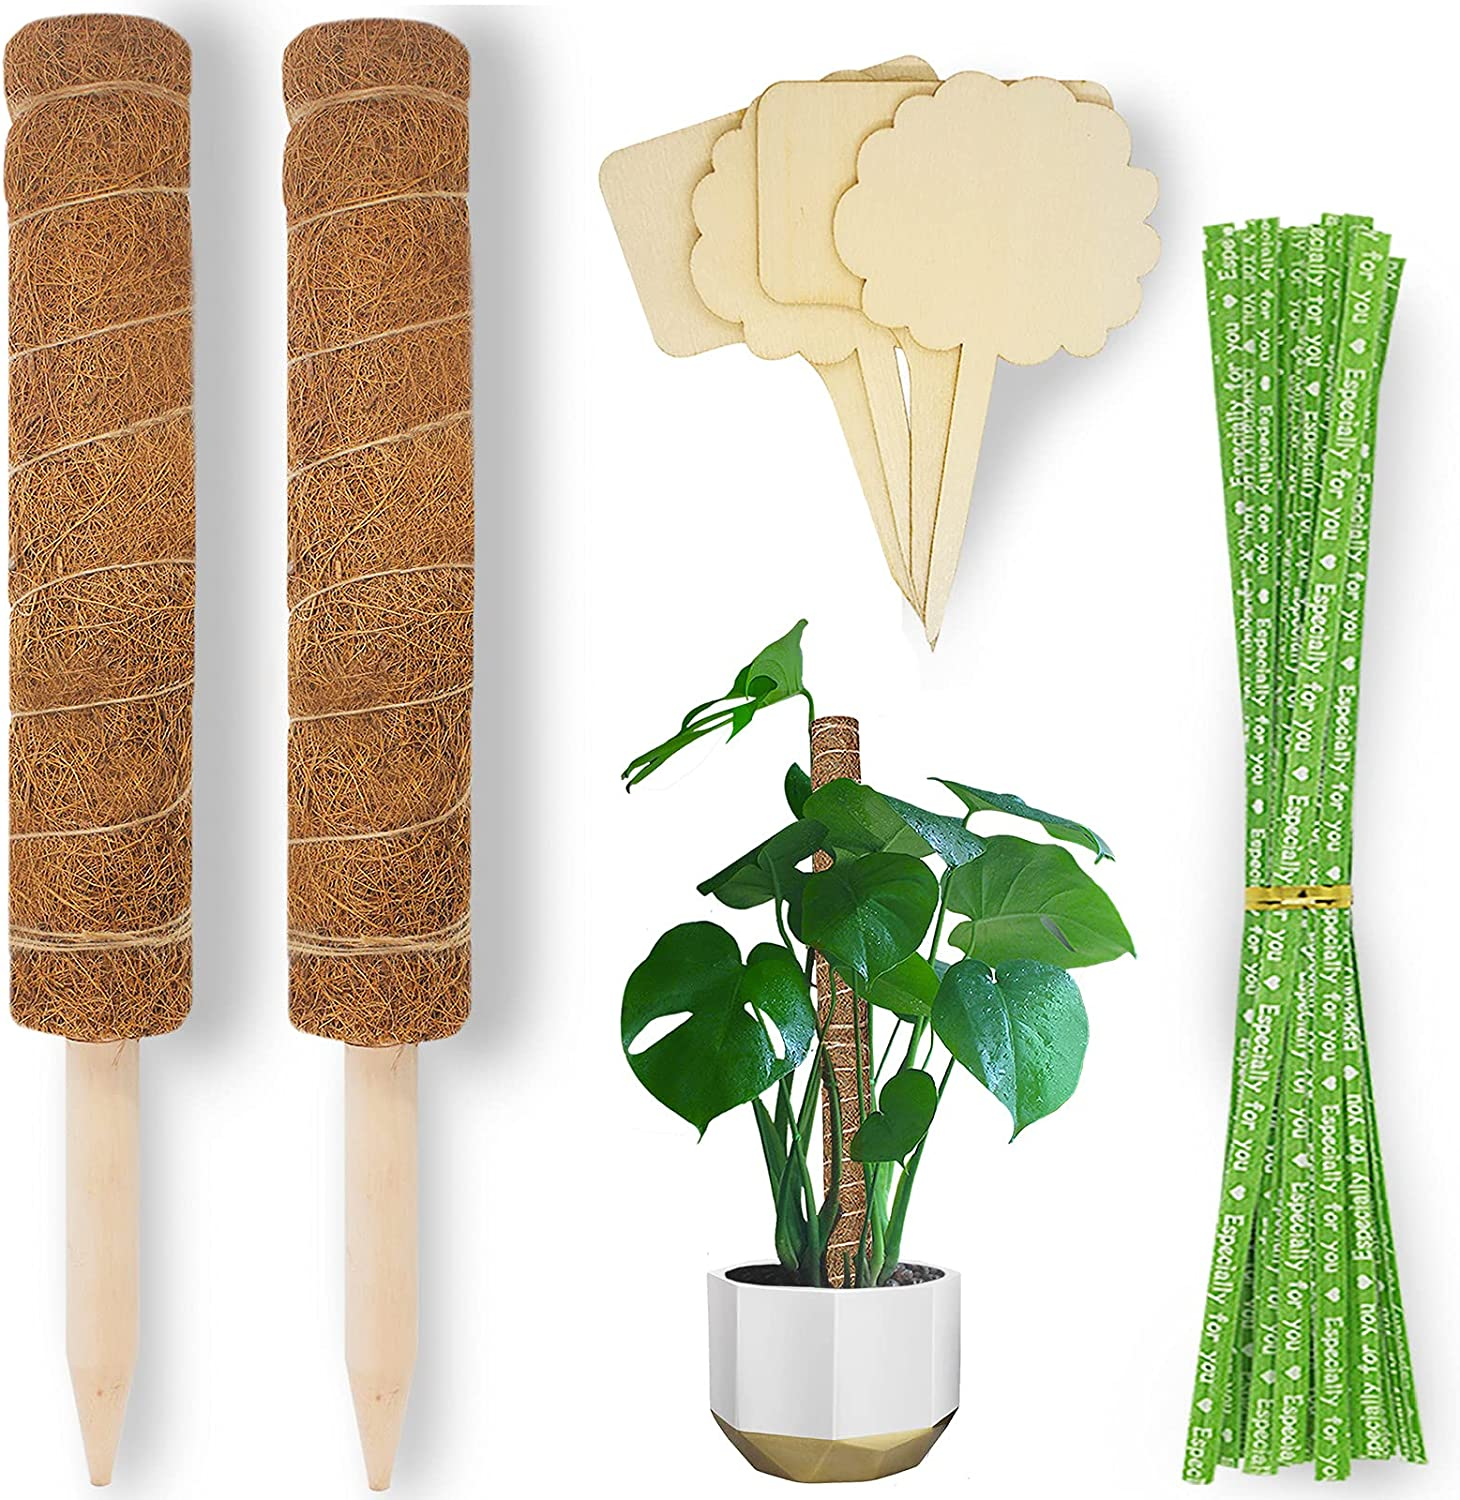 Aimerla Moss Pole Plant Support. 19.8 Inch Moss Sticks for Indoor Plants Climbing. 2 Coir Poles with 45 Twist Ties and 4 Plant Tags Plant Accessories Indoor for Monstera Creeper Pothos Potted Garden